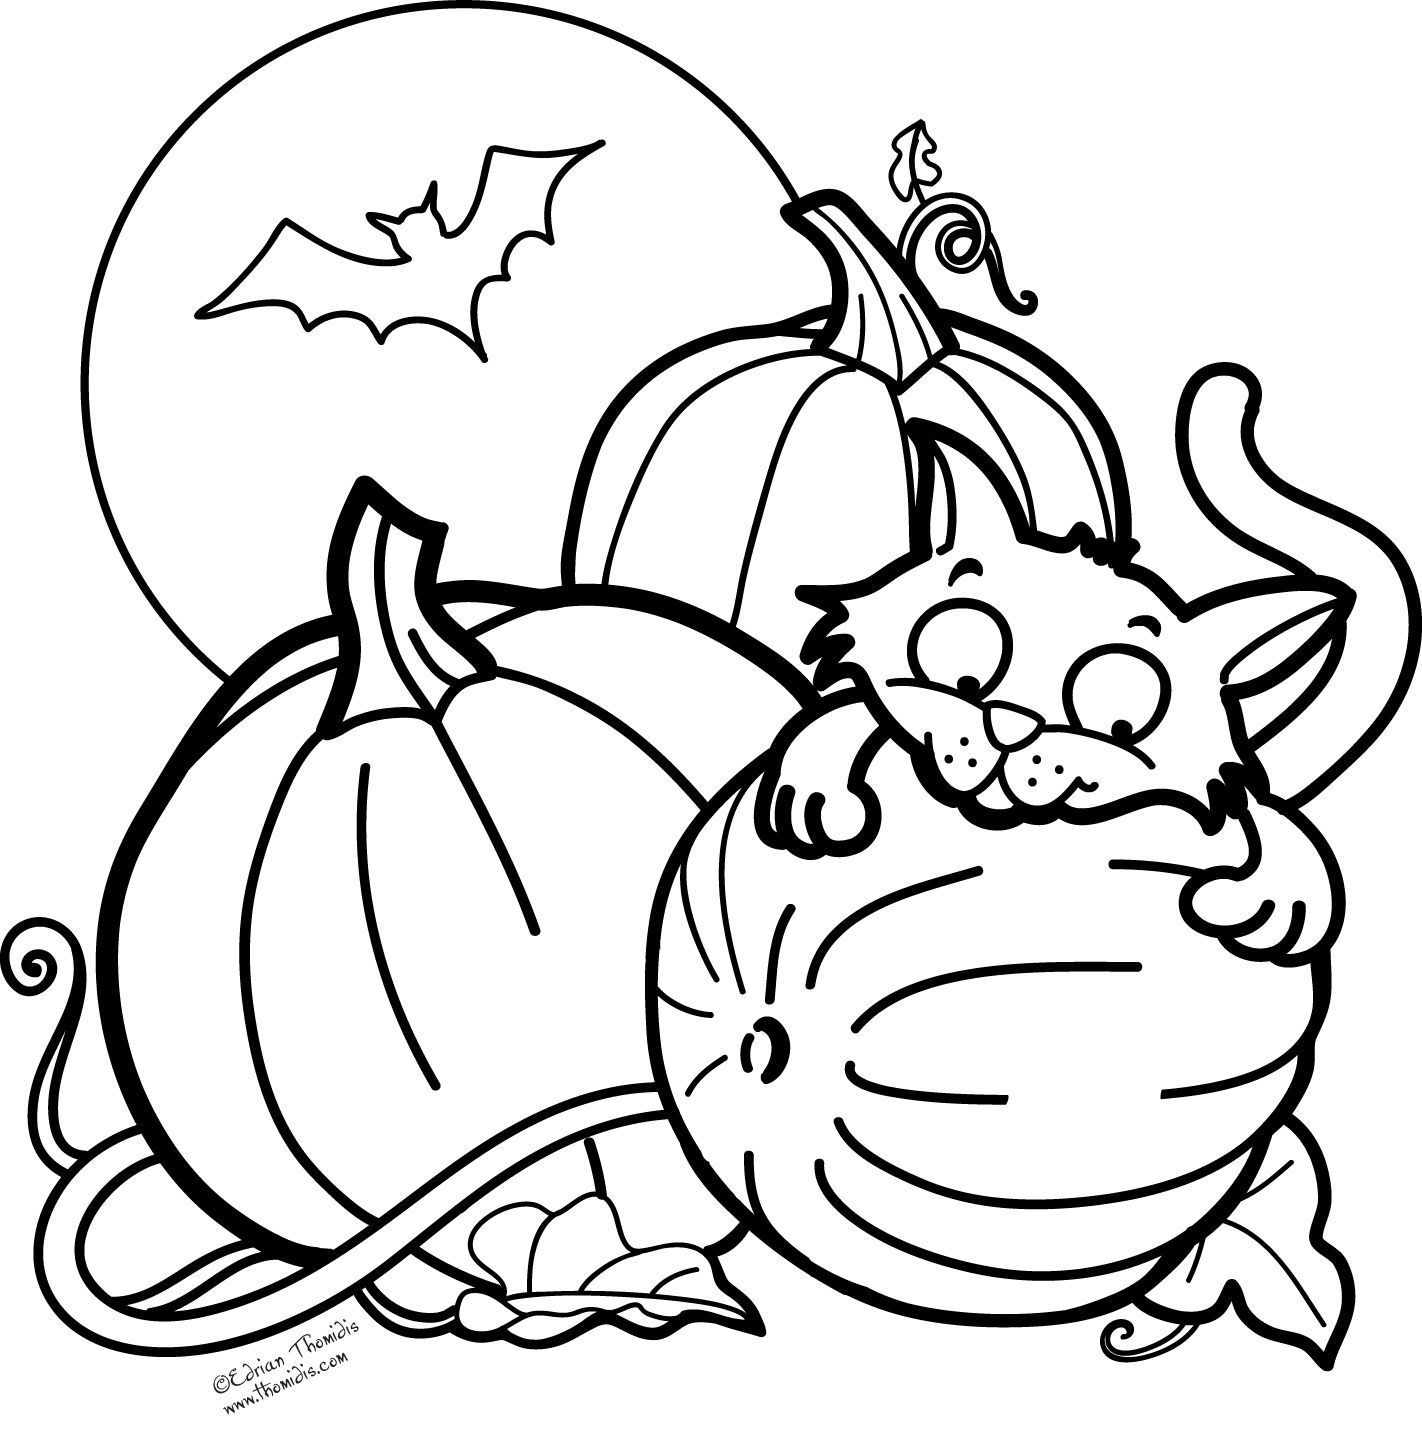 Pumpkin, Cat and a Bat for Halloween. Free Coloring Page